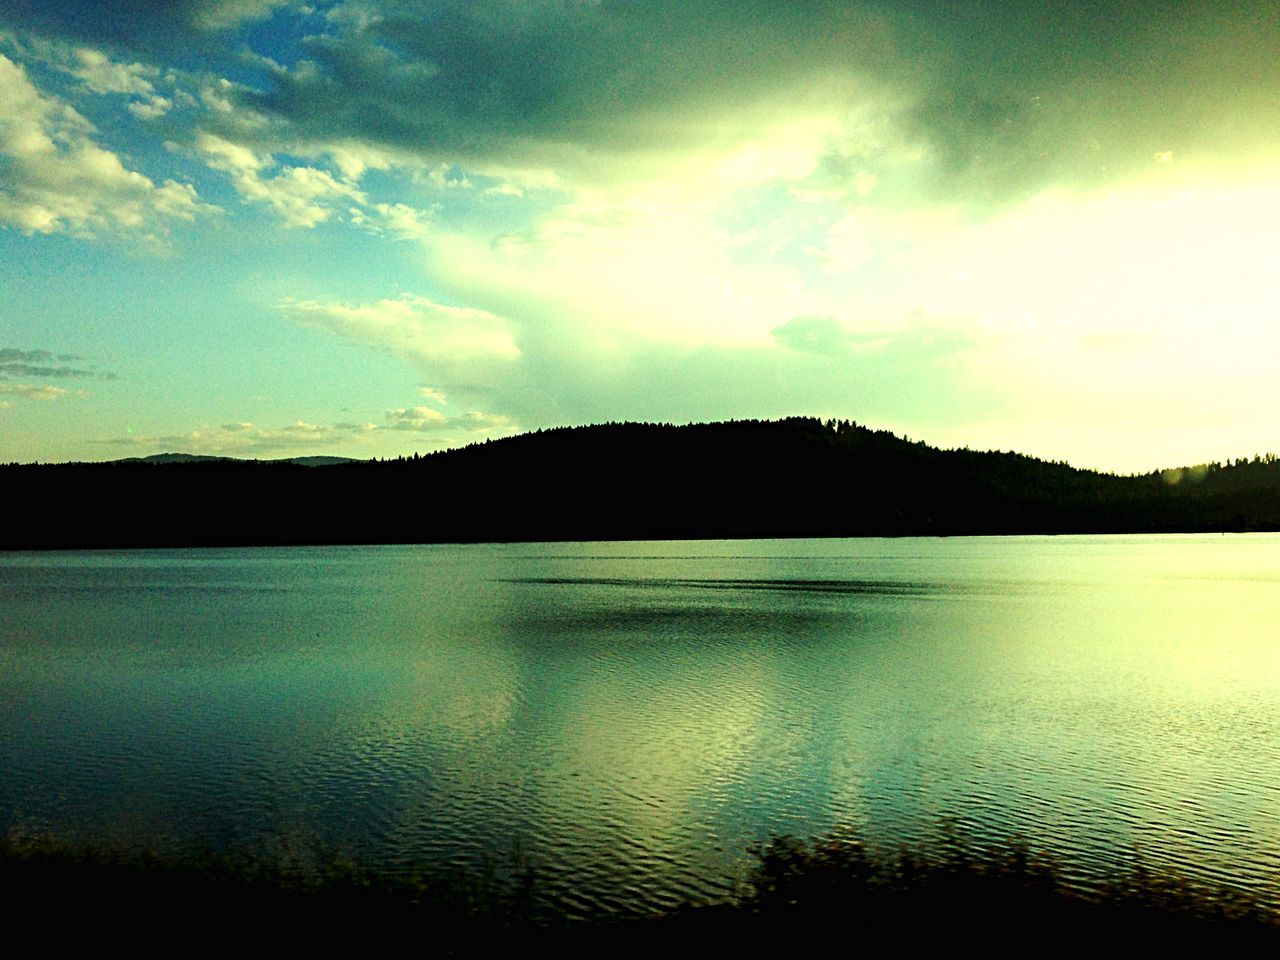 scenics, silhouette, sky, tranquil scene, tranquility, sunset, nature, water, beauty in nature, lake, reflection, no people, outdoors, cloud - sky, tree, landscape, mountain, day